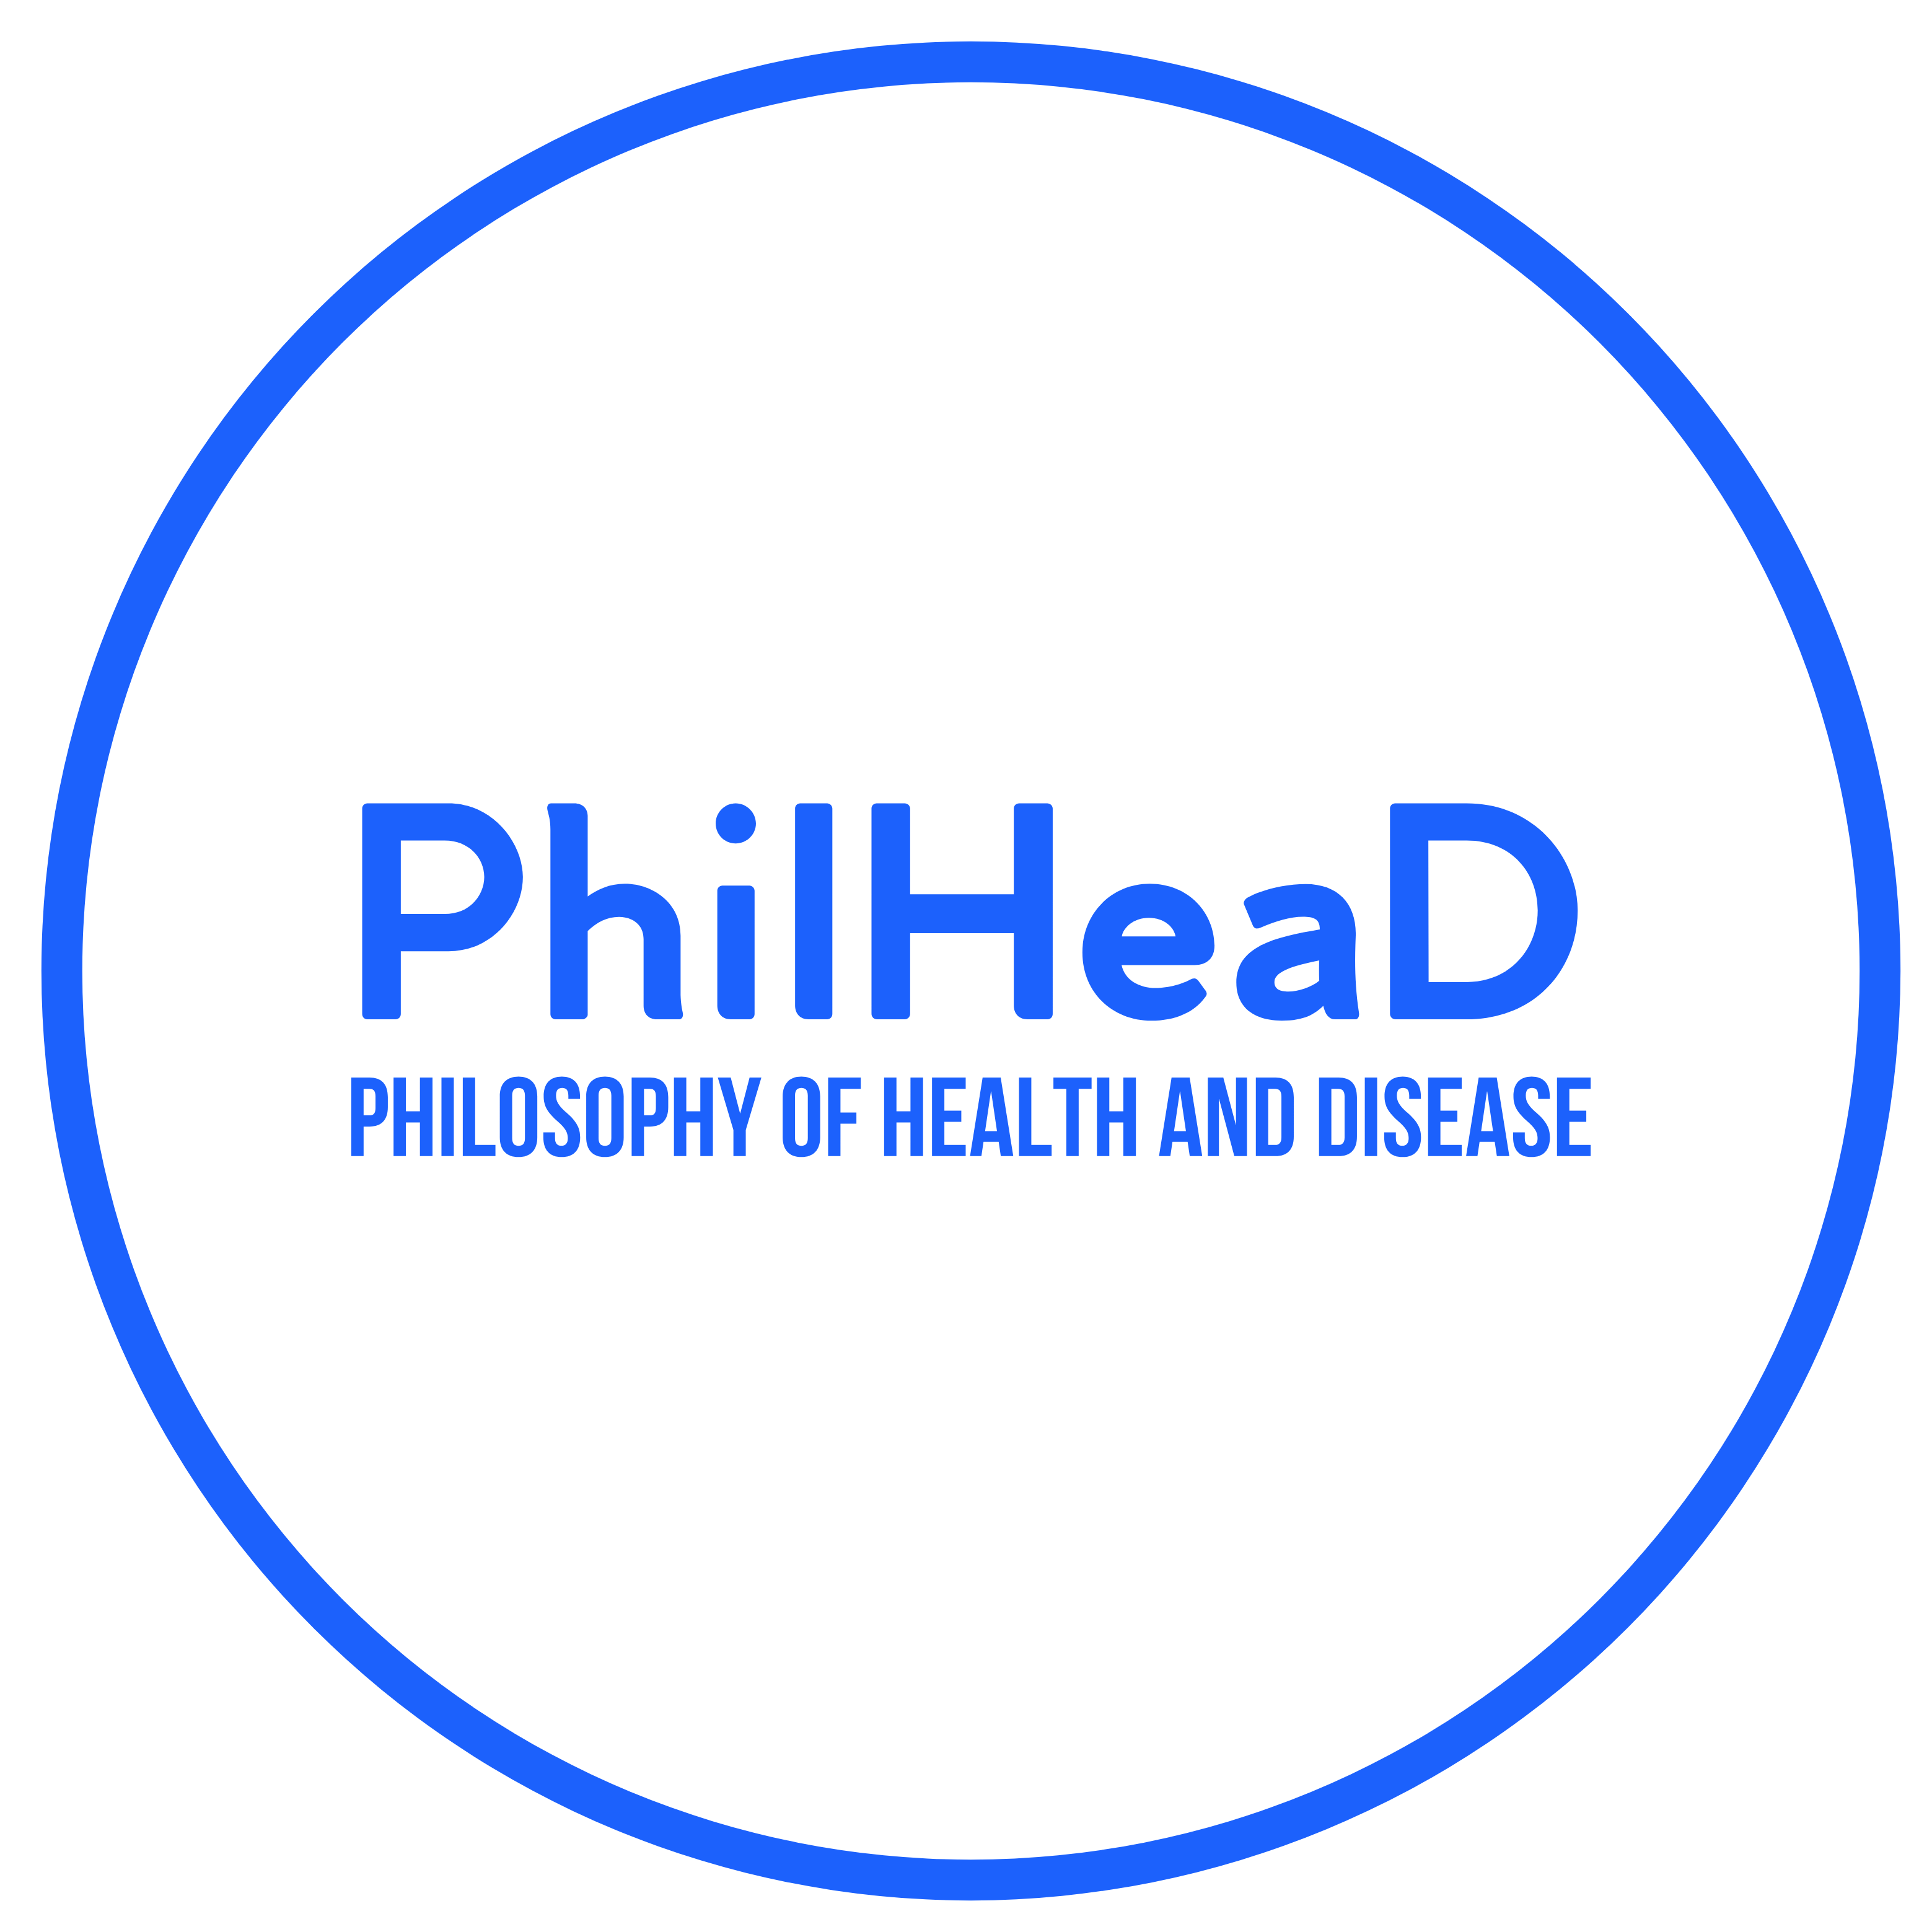 Research Center for Philosophy of Health and Disease